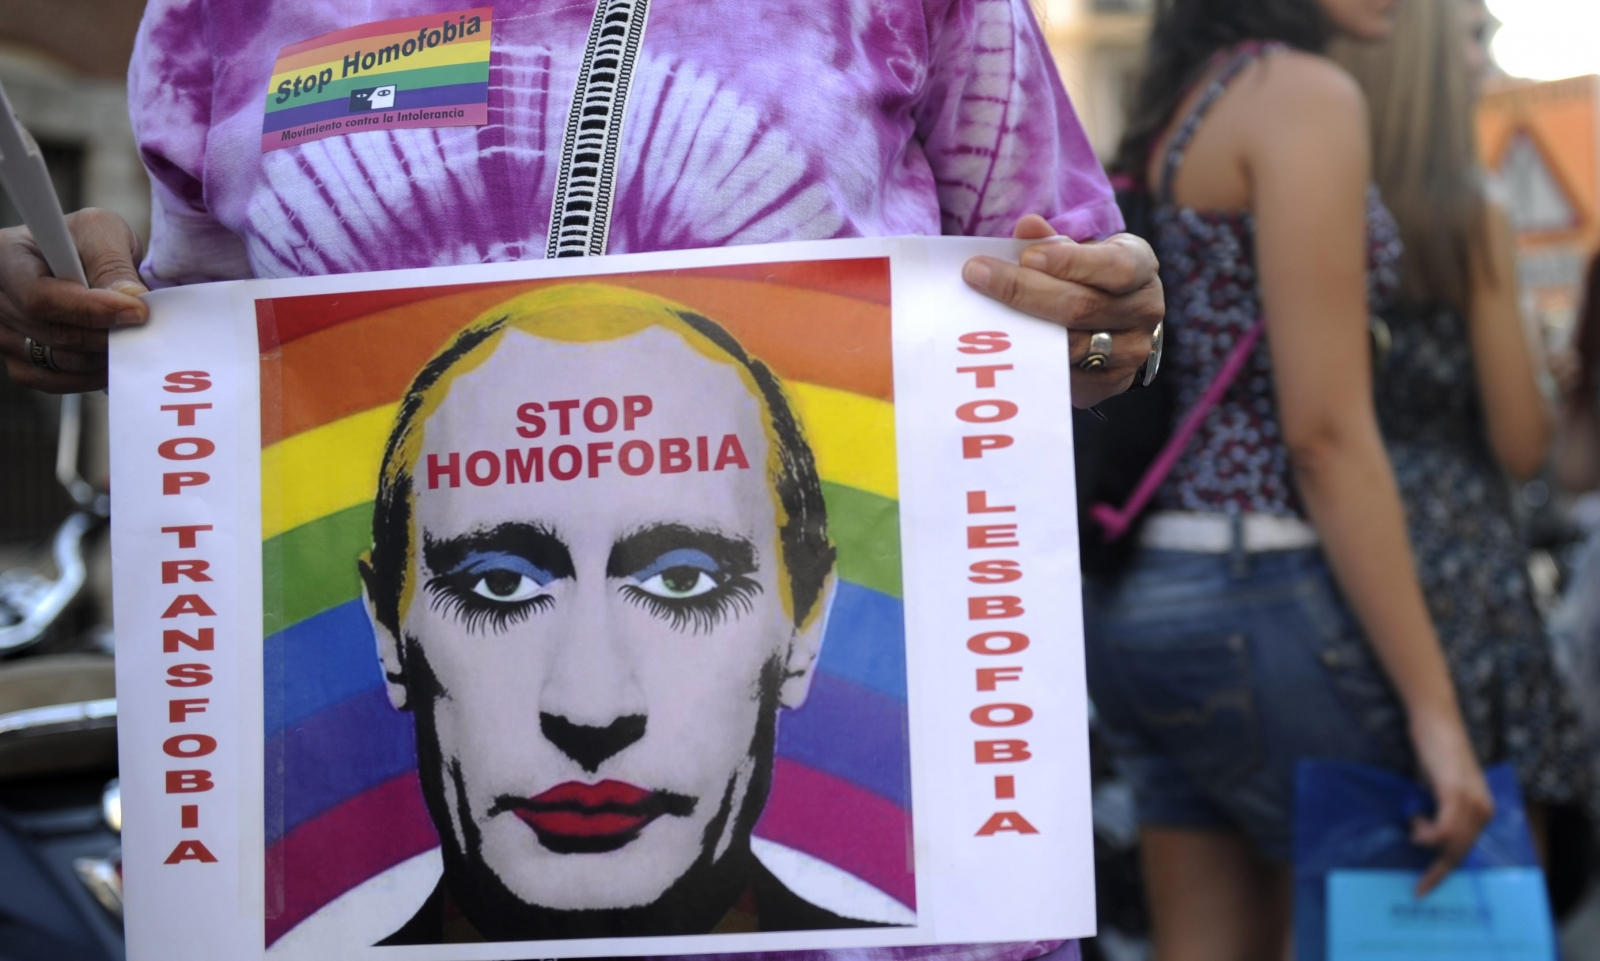 Putin gay rights